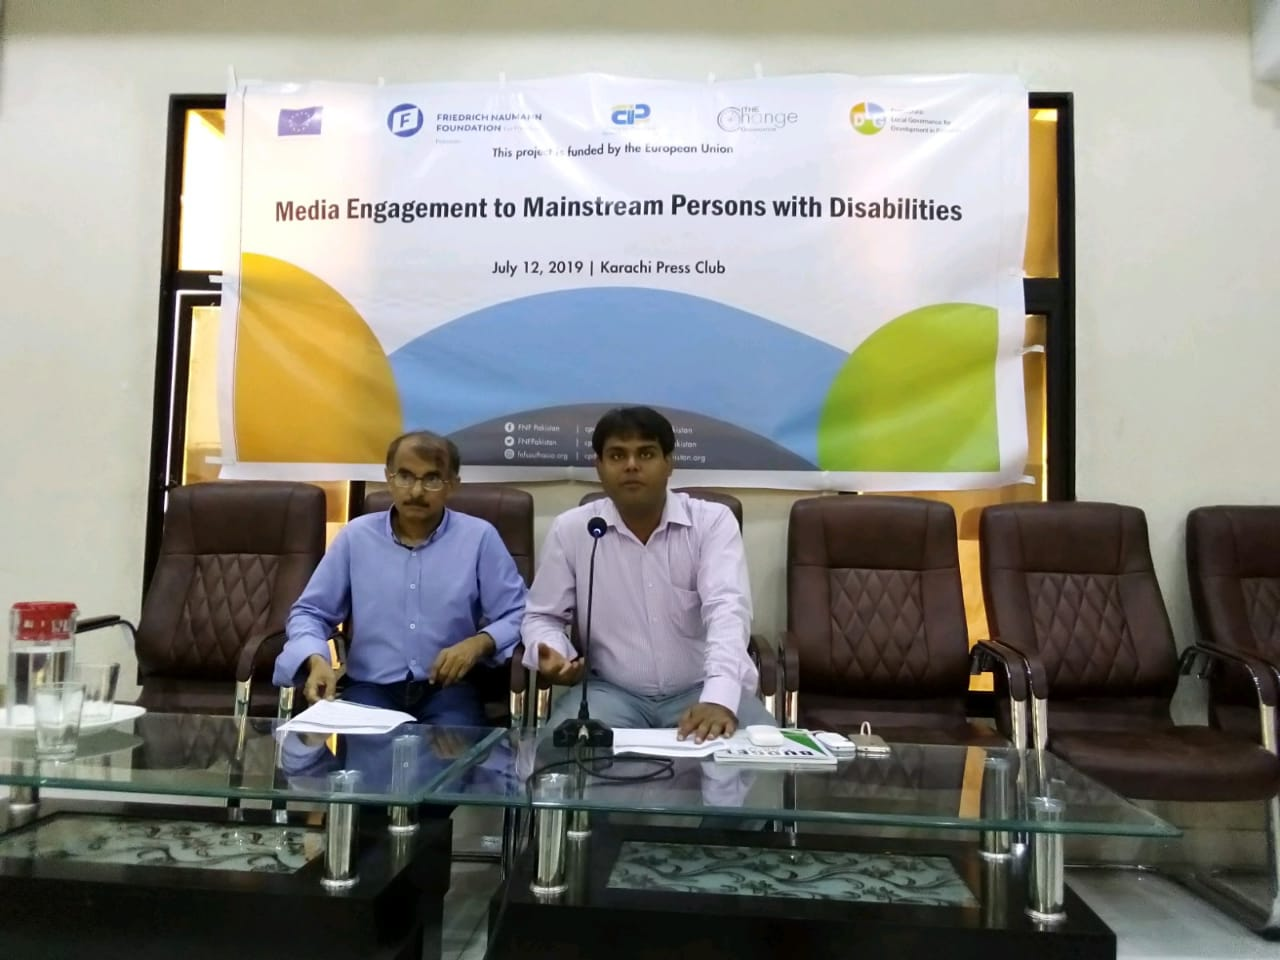 Media Engagement to Mainstream Persons with Disabilities